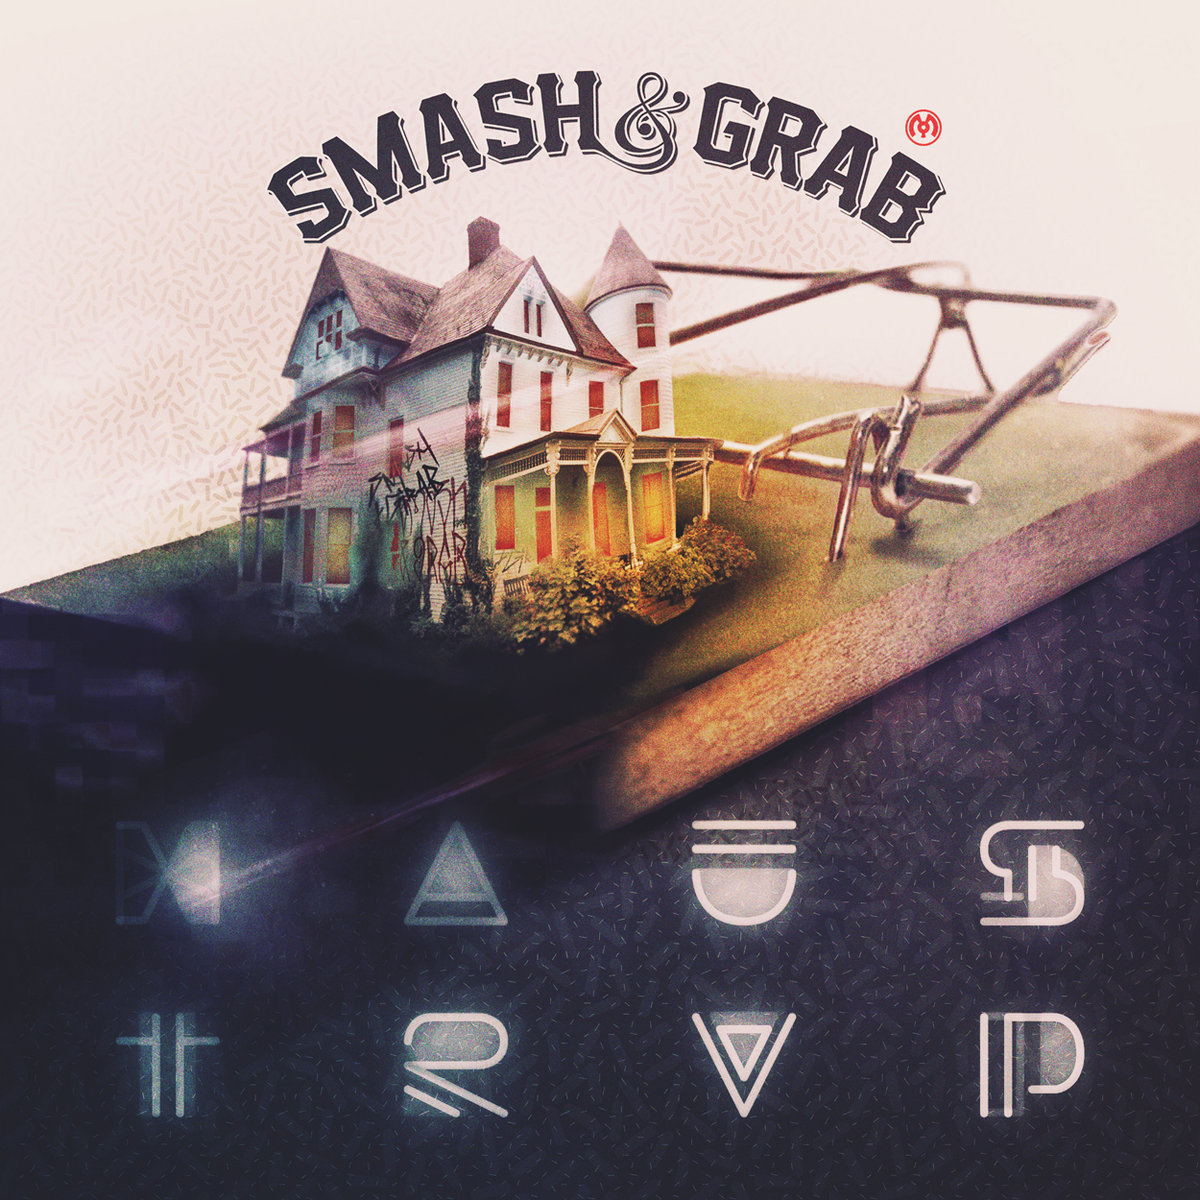 Smash & Grab - Working On It @ 'HAUS TRVP' album (electronic, house)